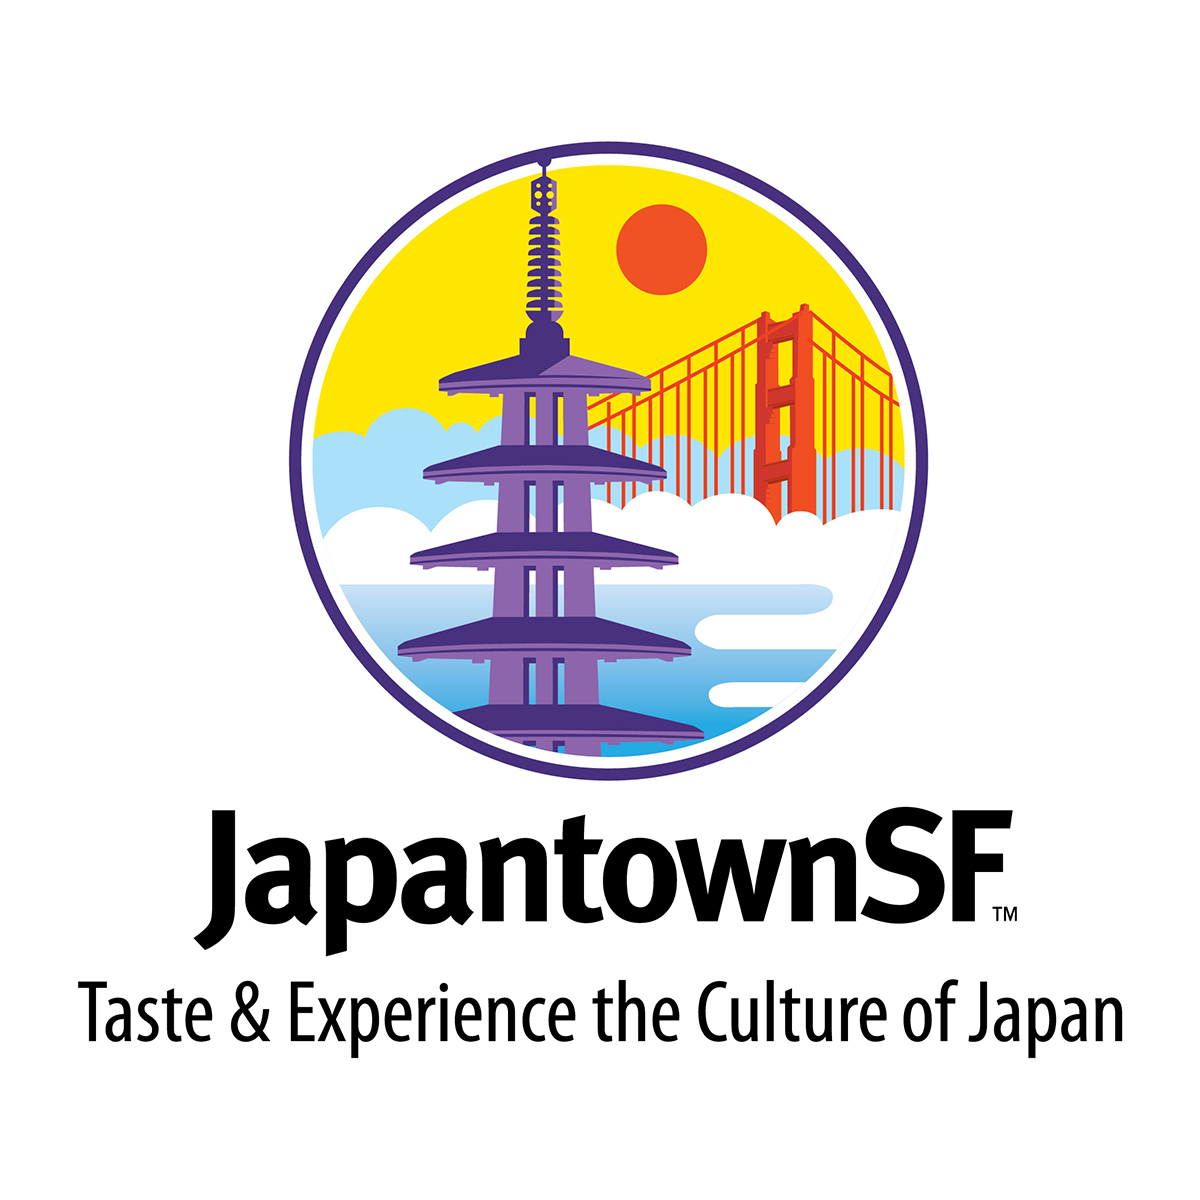 Welcome to Japantown! - In the coming months you'll start to see a fresh new look for Japantown. Working with our community to emphasize the appeal of JapantownSF, inviting locals and tourists to shop, dine and experience what our neighborhood has to offer.